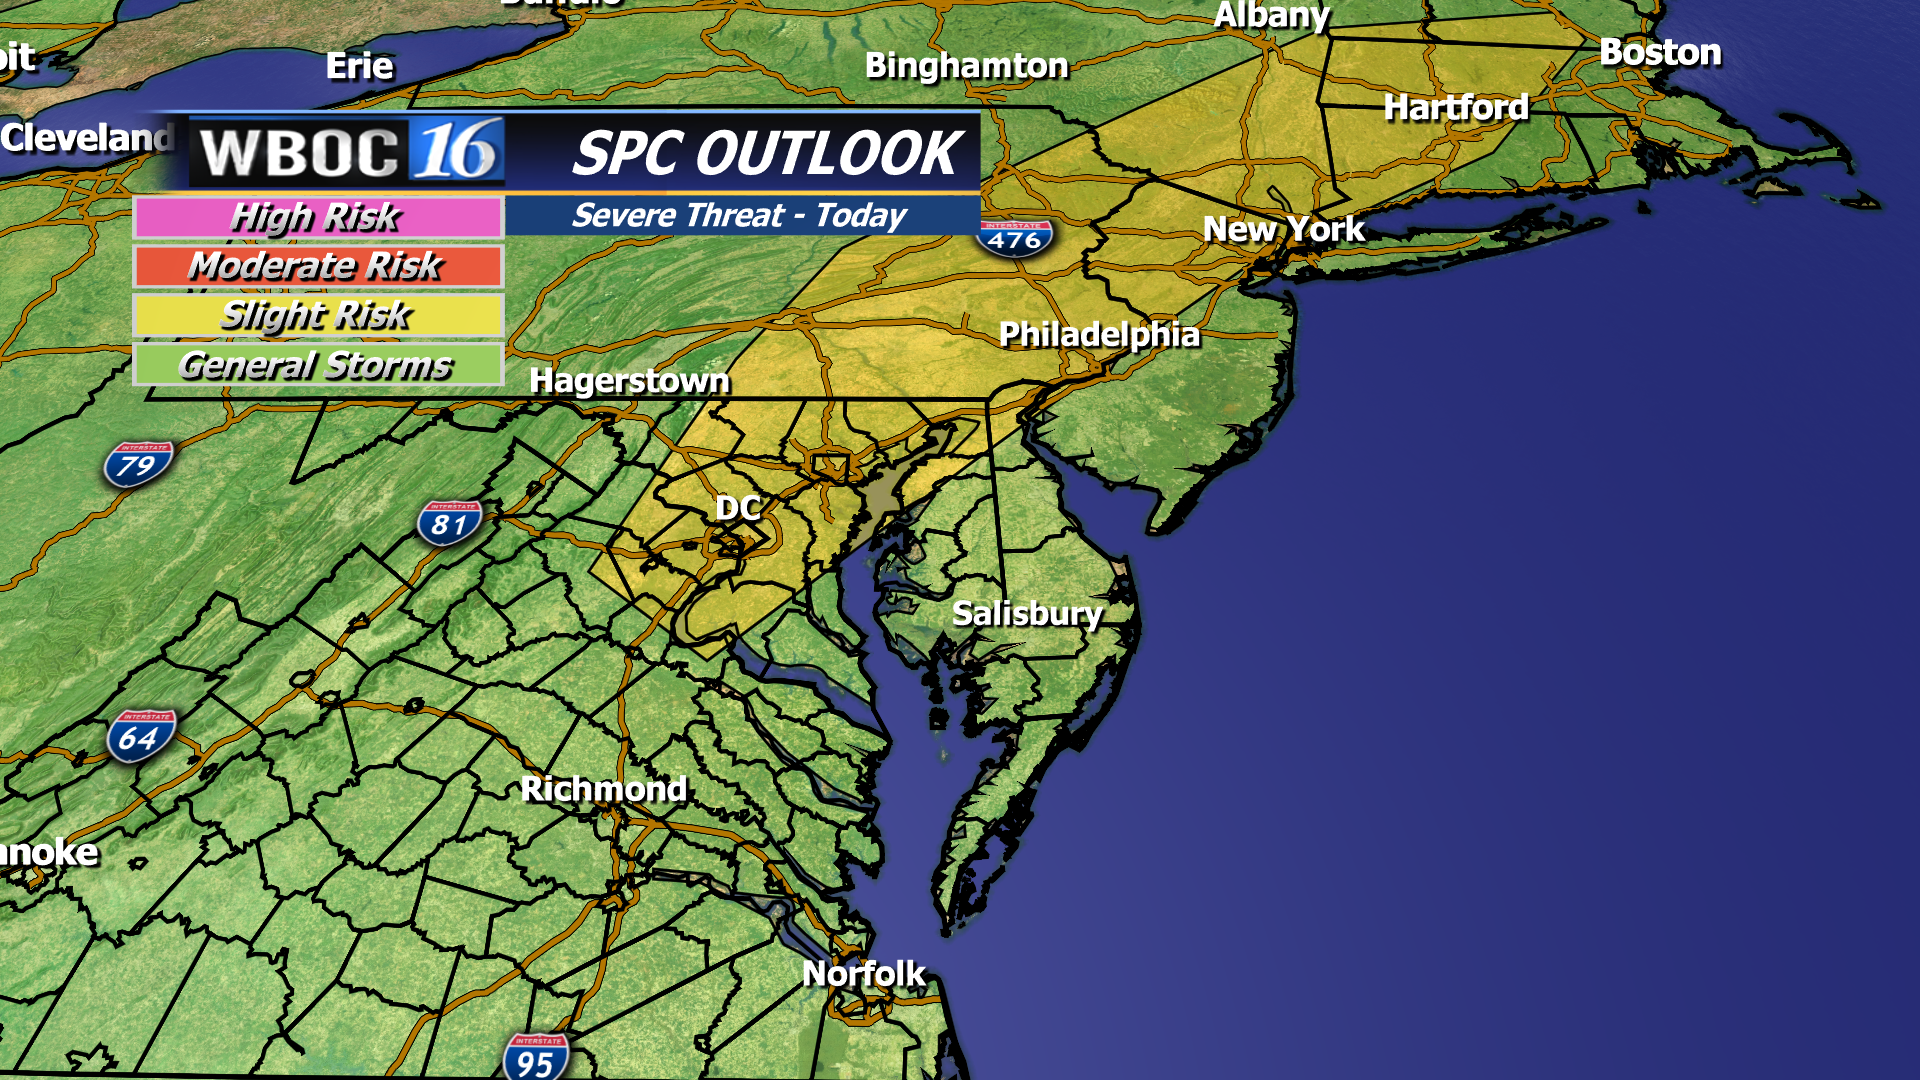 The Storm Prediction Center has northern and eastern Delmarva and the I-95 corridor under a SLIGHT risk for severe weather.